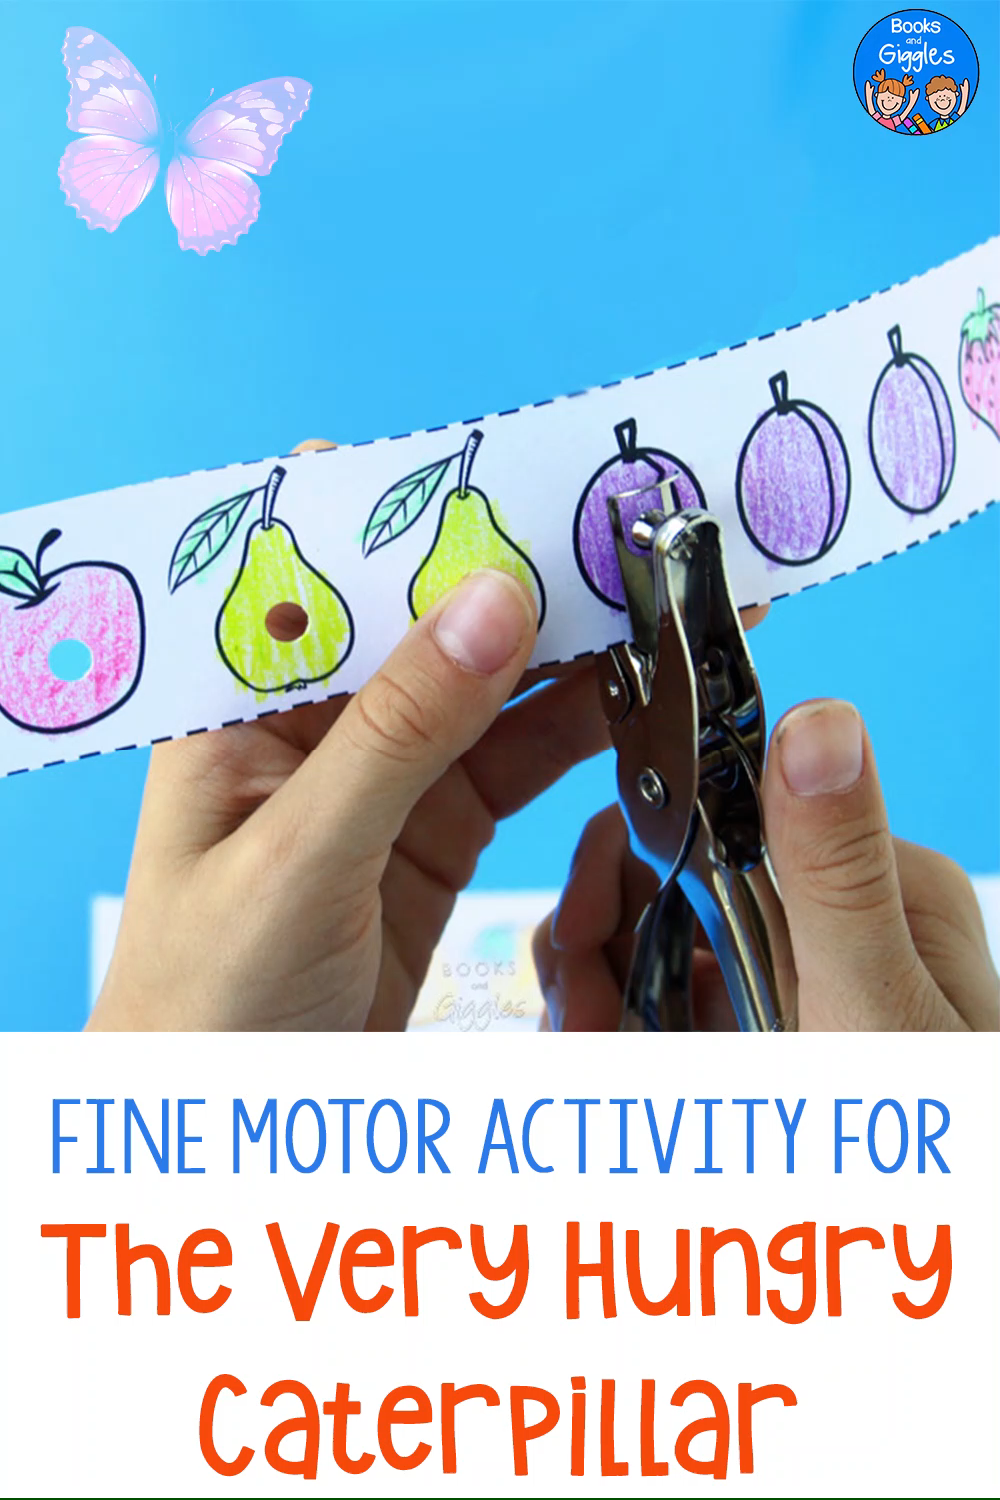 This free printable Very Hungry Caterpillar activity is a fun way for preschoolers and kindergartners to work on fine motor skills, story retelling, and counting. #preschool #kindergarten #booksandgiggles